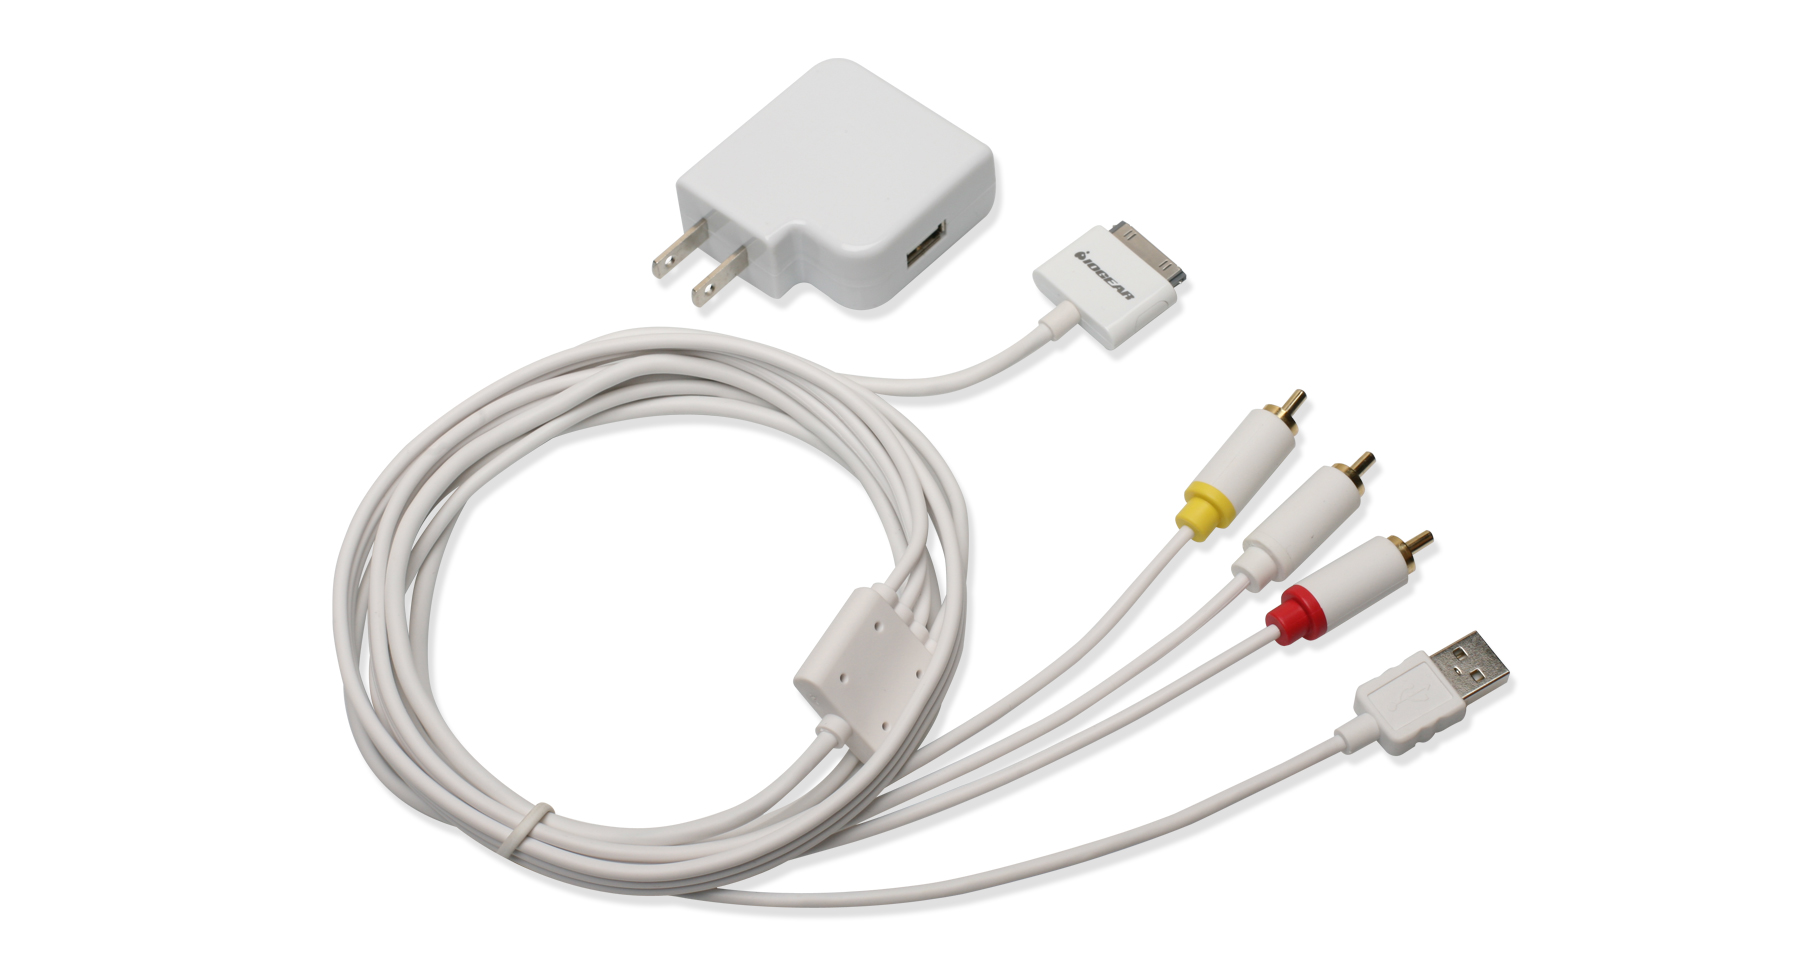 Composite AV Cable with Charge and Sync for iPhone / iPod